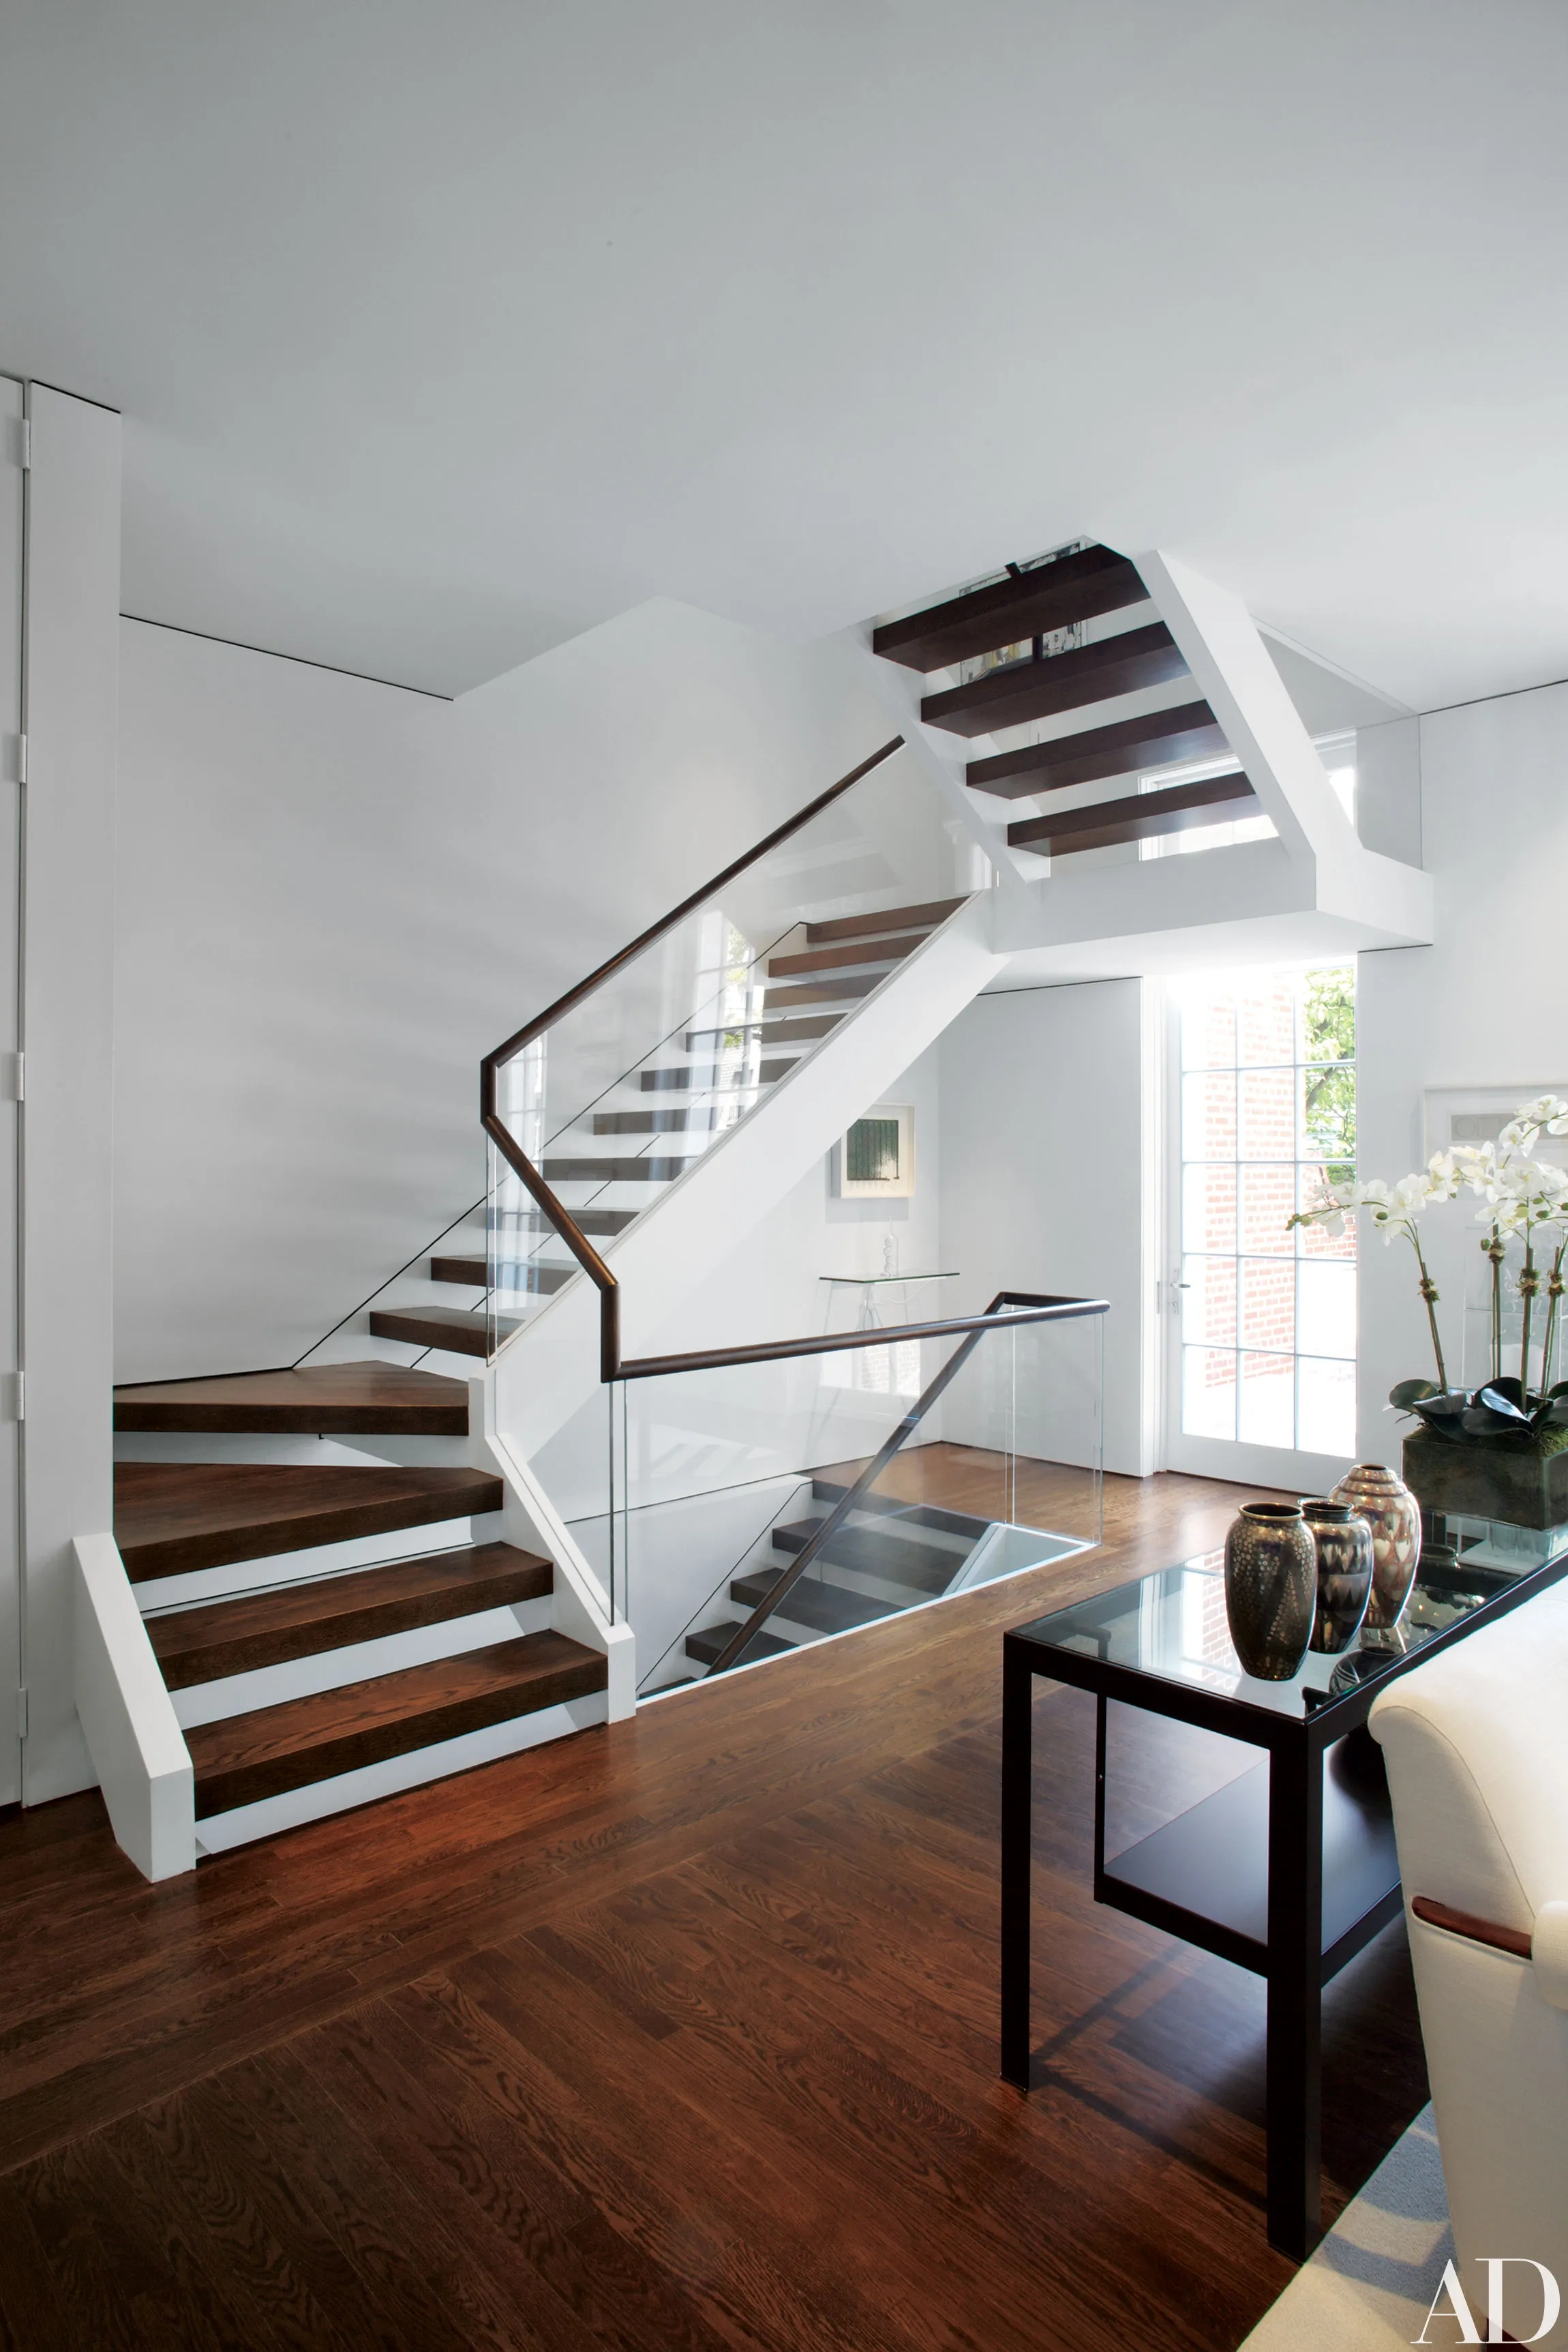 15 Striking Modern Staircases Architectural Digest | Modern Stair Hand Railing | Stainless Steel | Decorative | Creative Outdoor Stair | Glass | Solid Wood